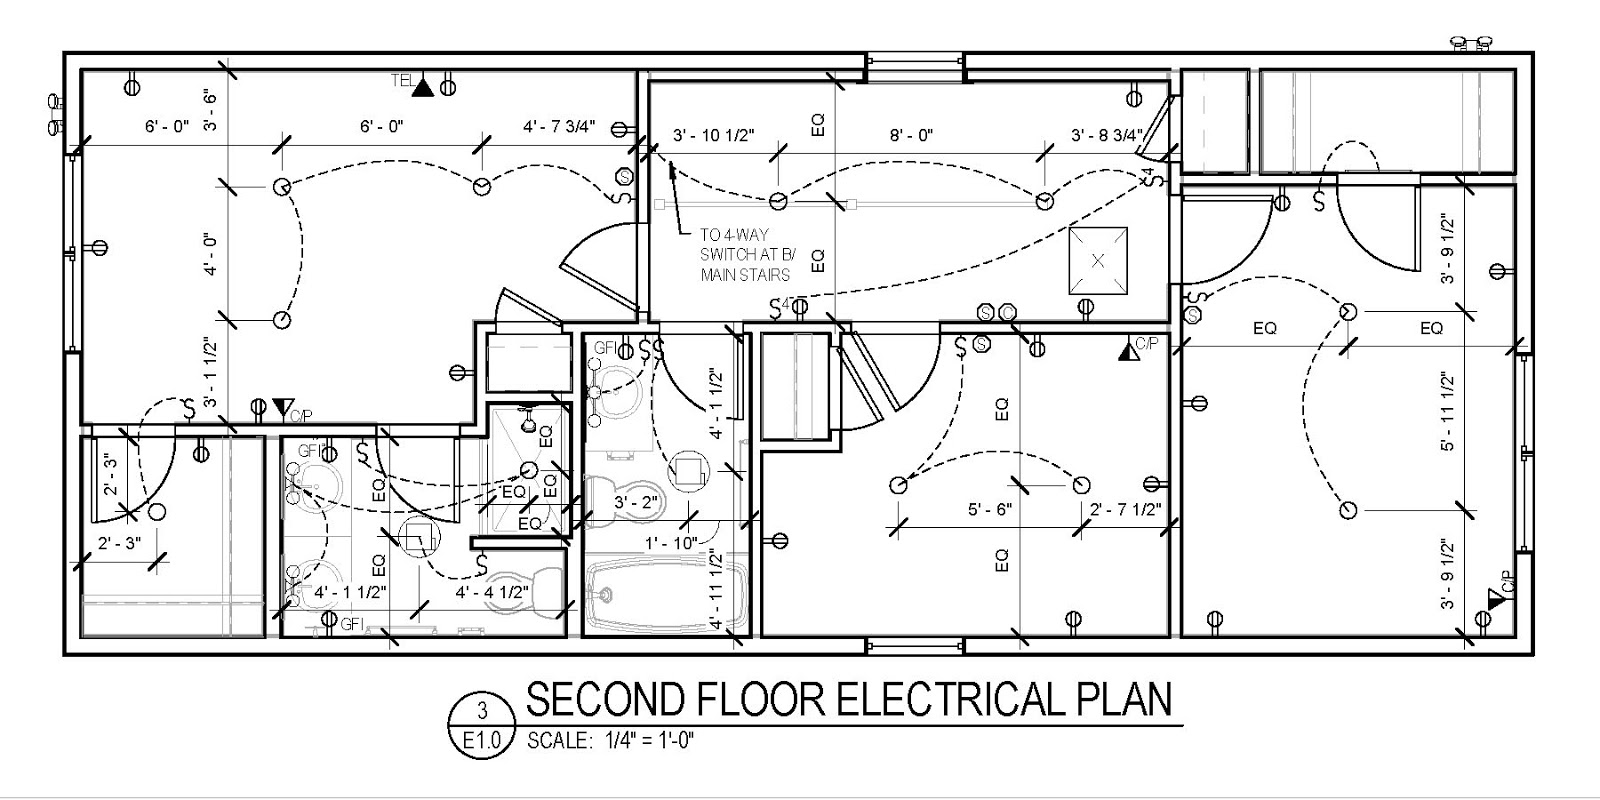 Electrical Drawing Layout